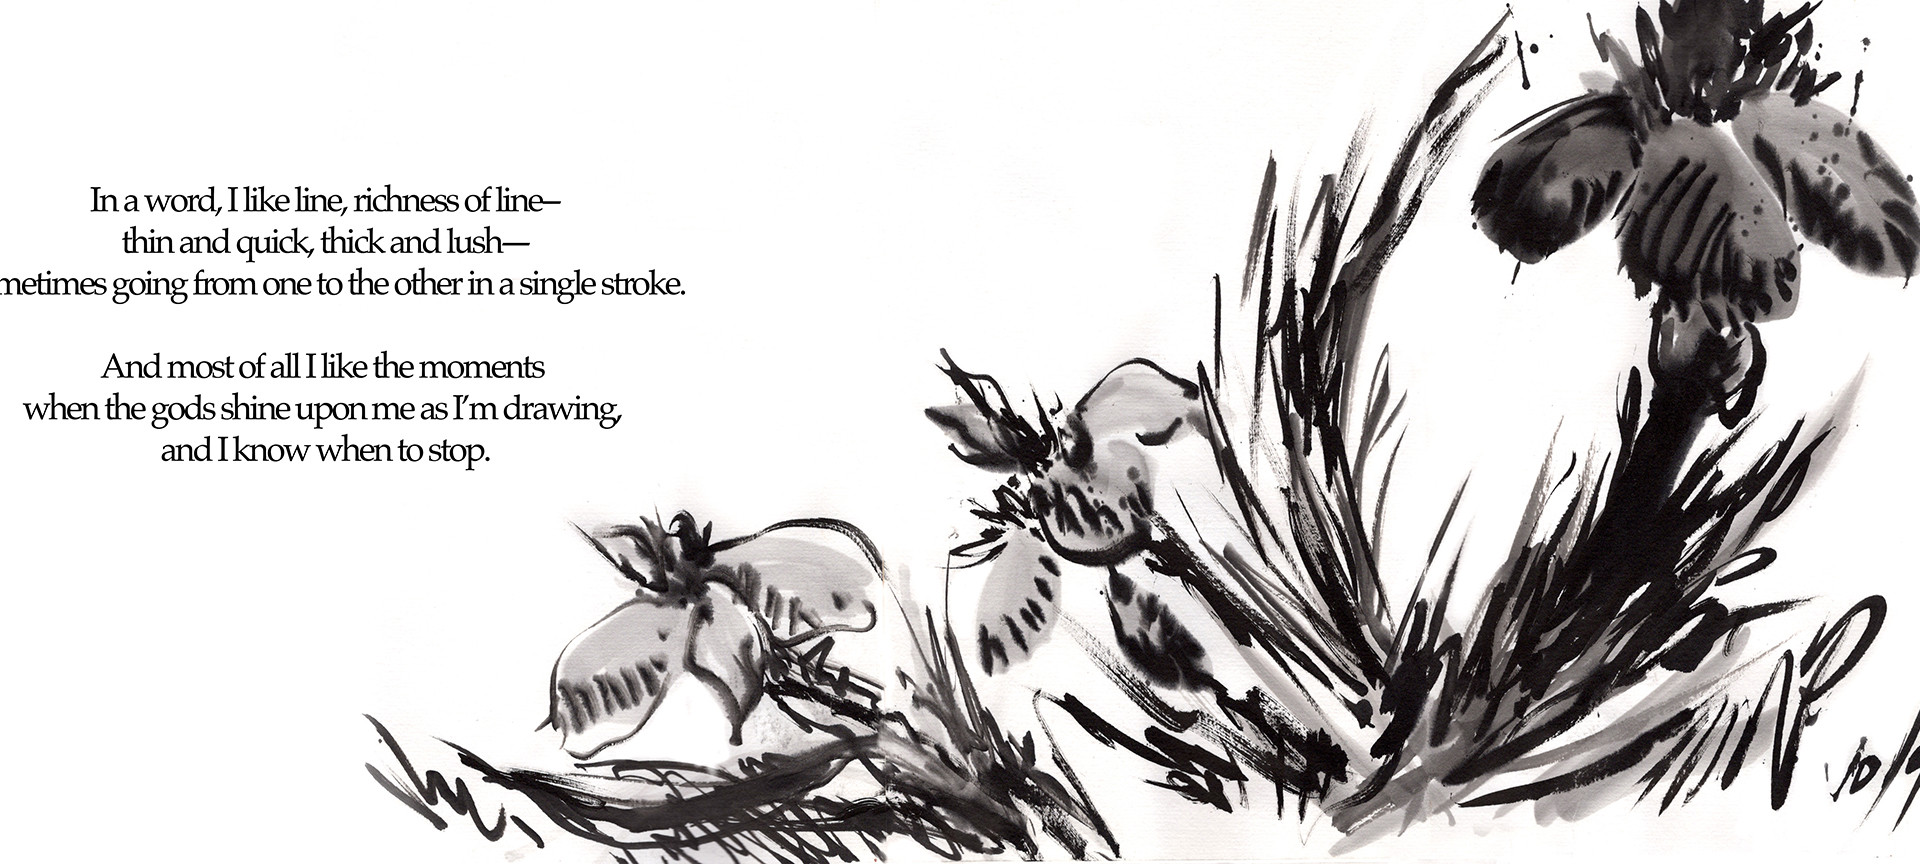 Ink Flower - Life on the Page, A Graphic Memoir